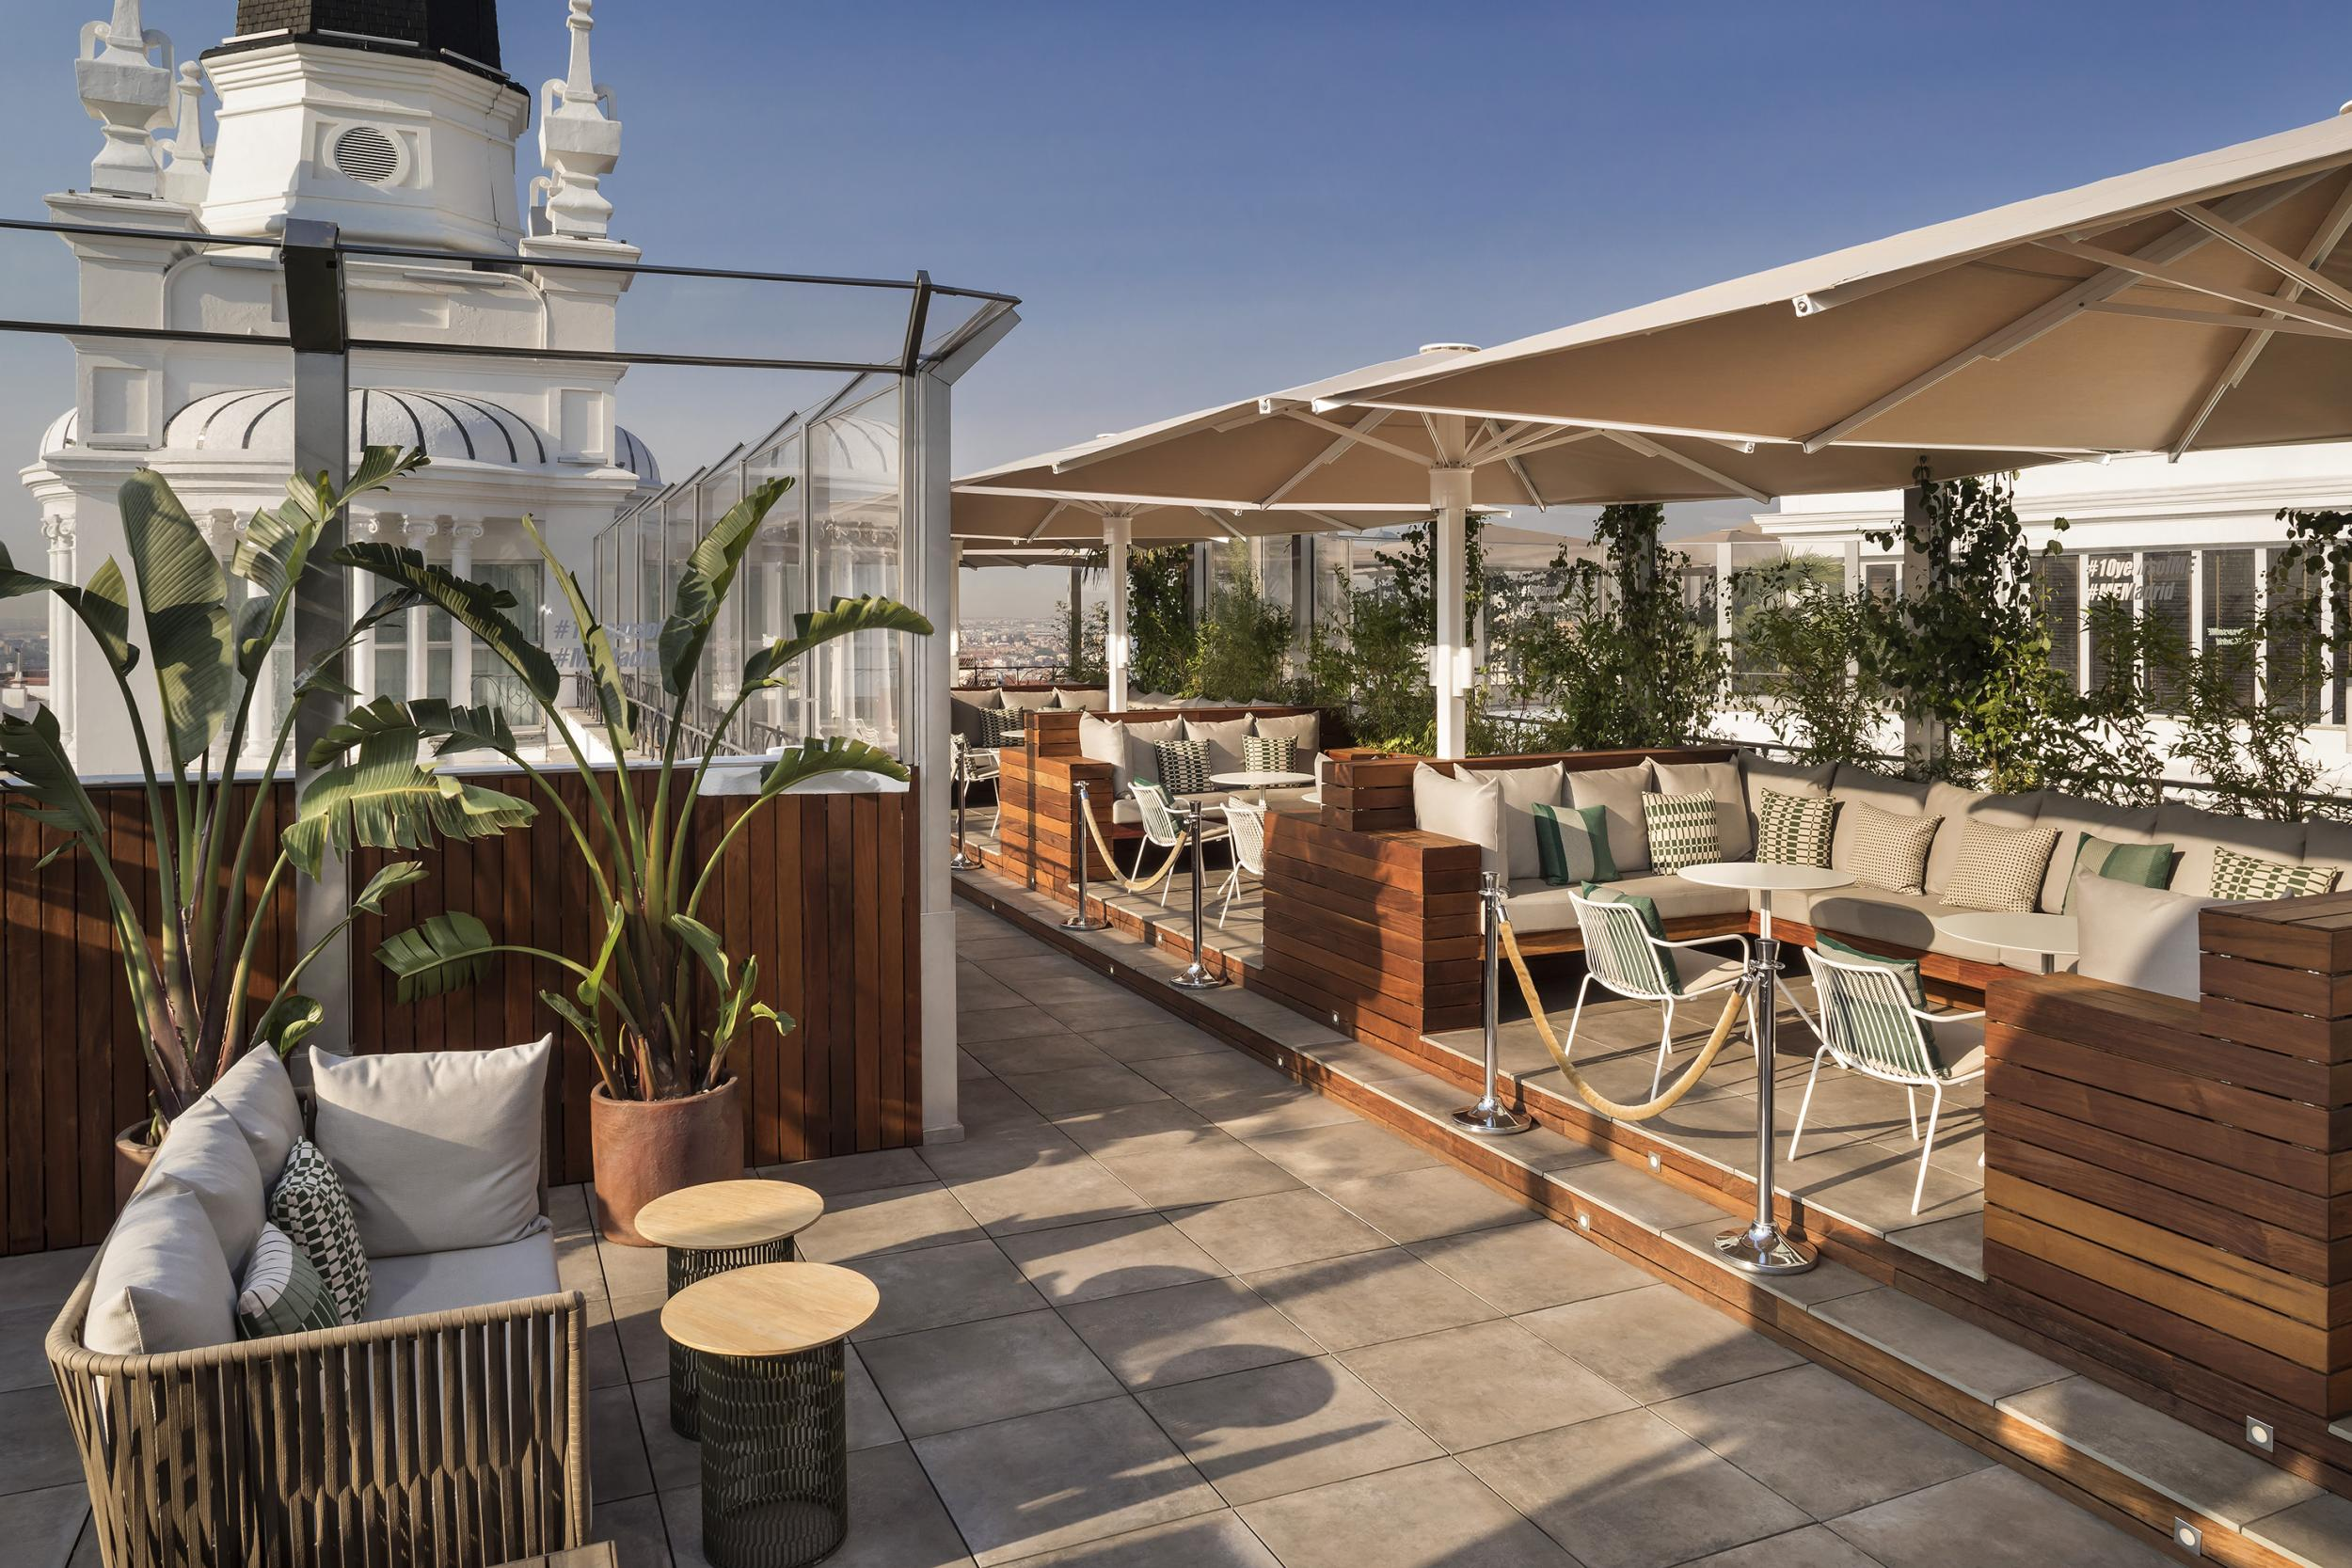 Madrid hotels 10 of the best places to stay the independent - Luxury hotels in madrid with swimming pool ...